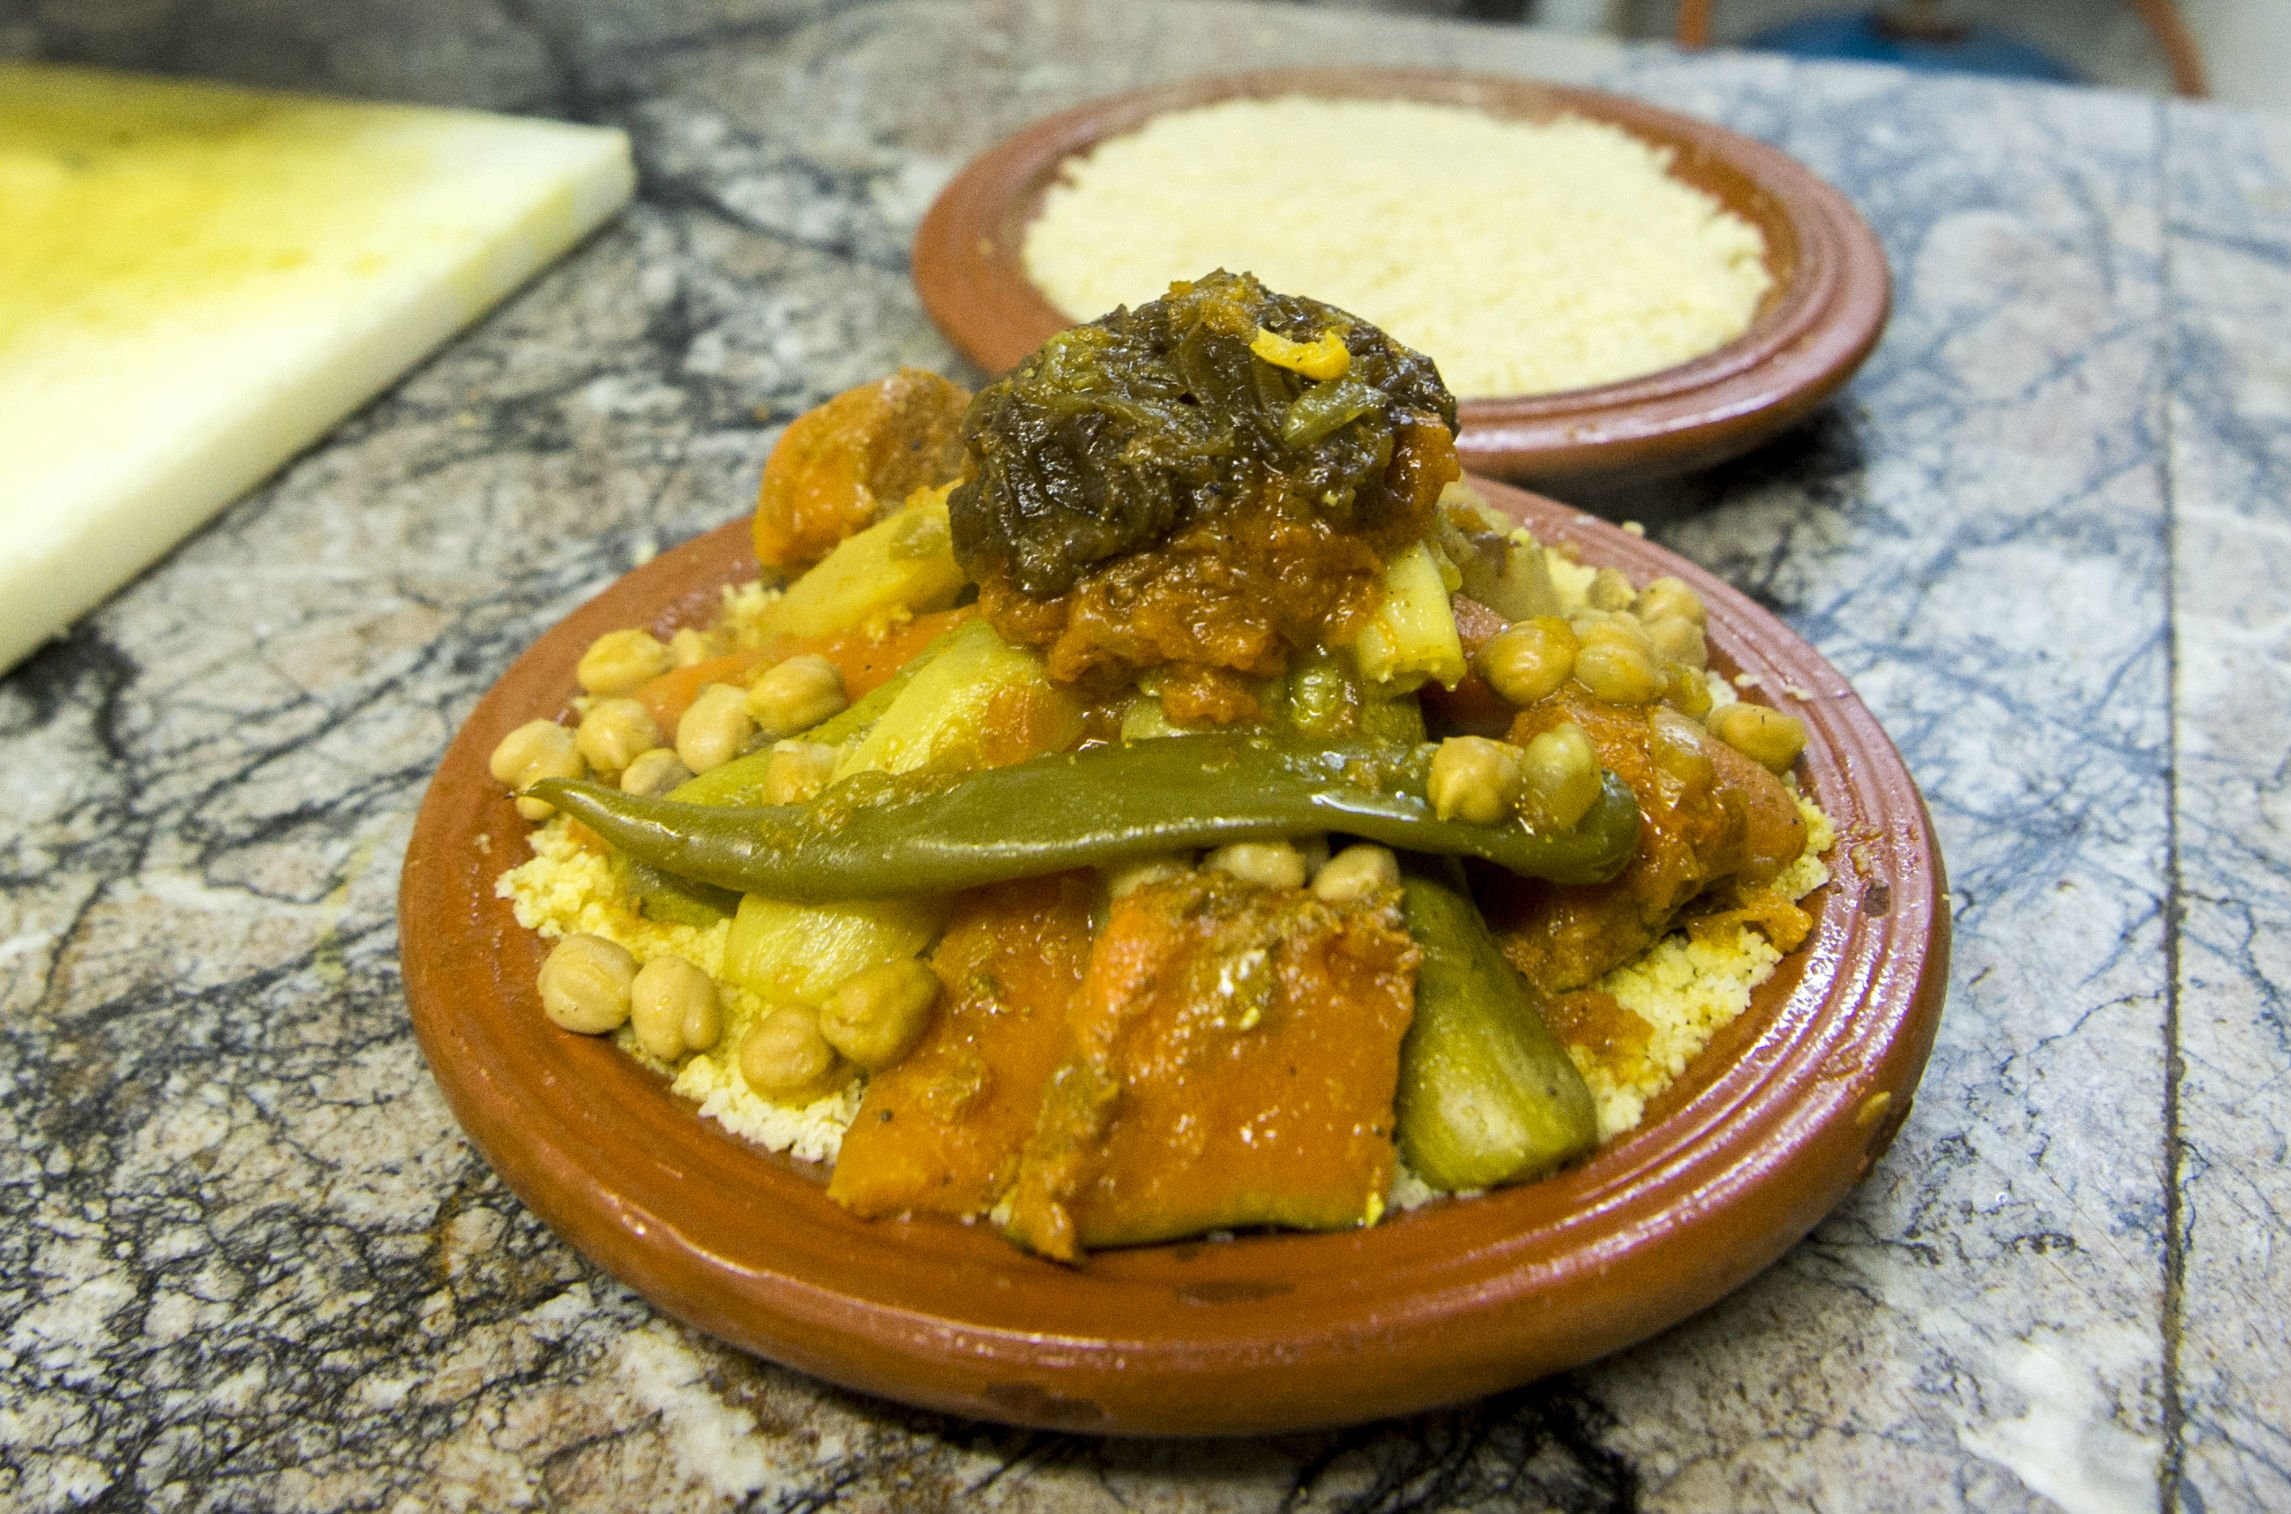 Couscous is prepared at a restaurant in Rabat in February 2018 (AFP)